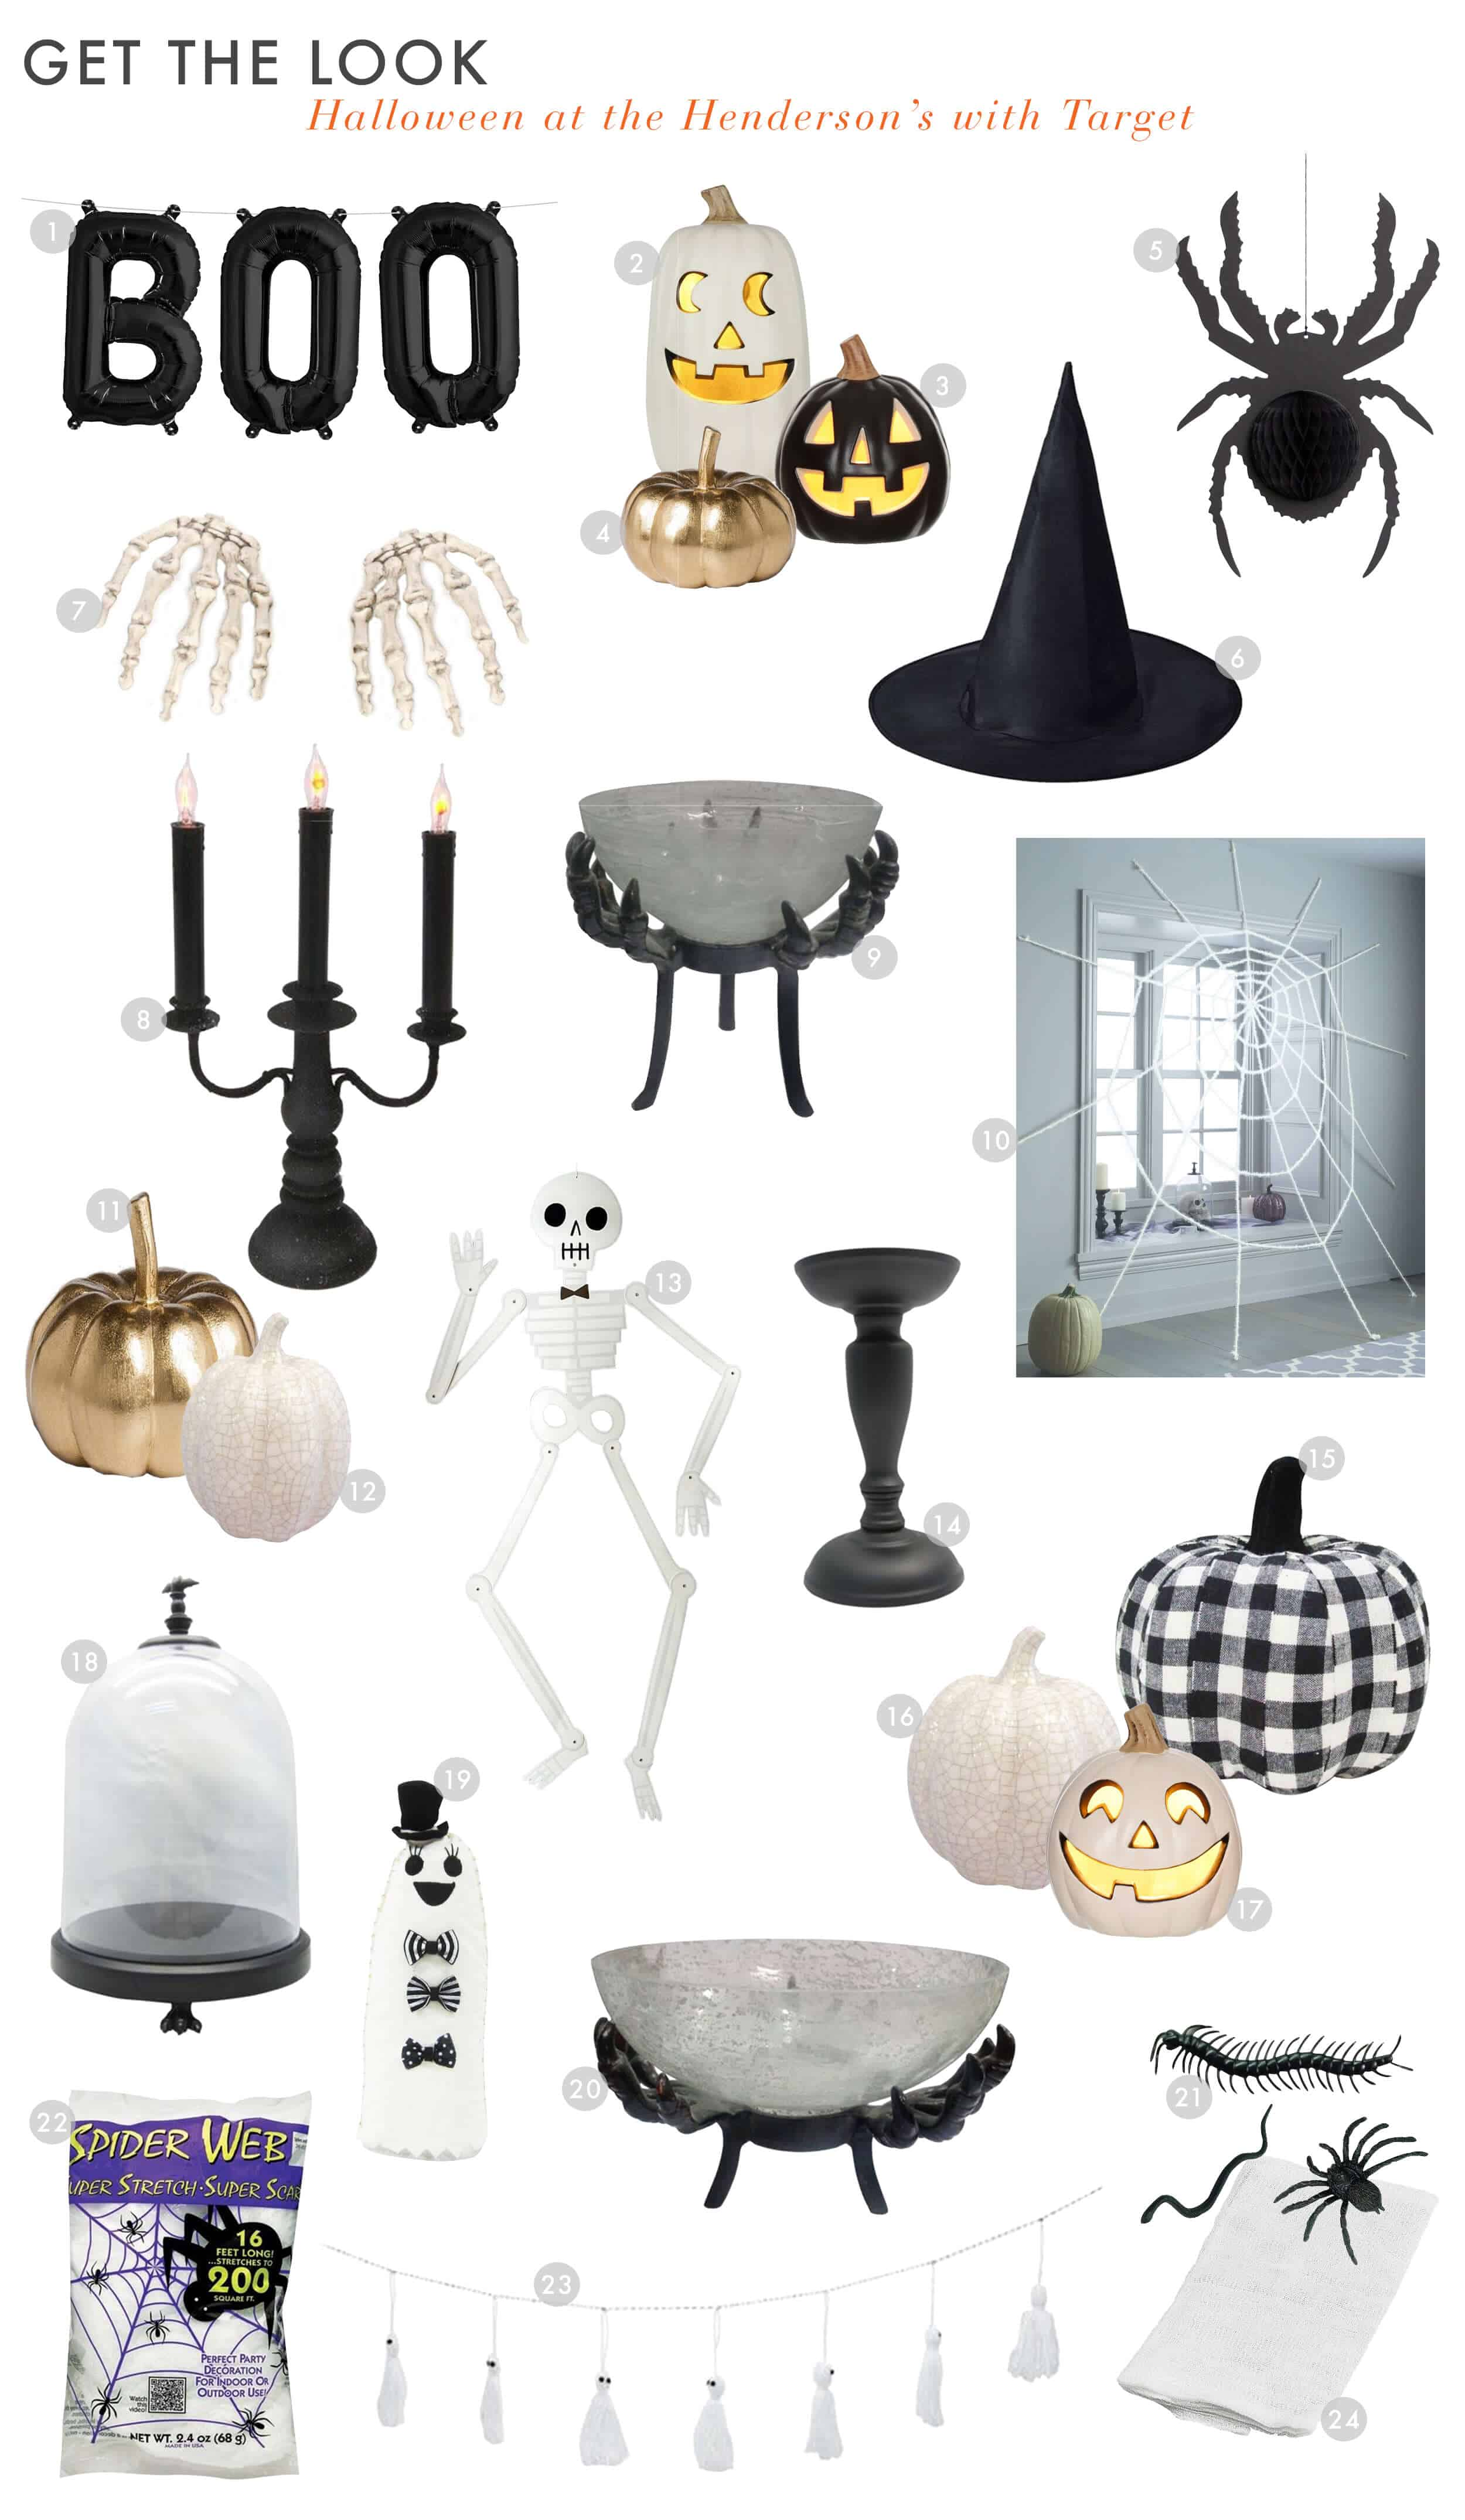 Emily Henderson Target Halloween 2017 Spooky Black And White Kid Friendly Indoors Get The Look